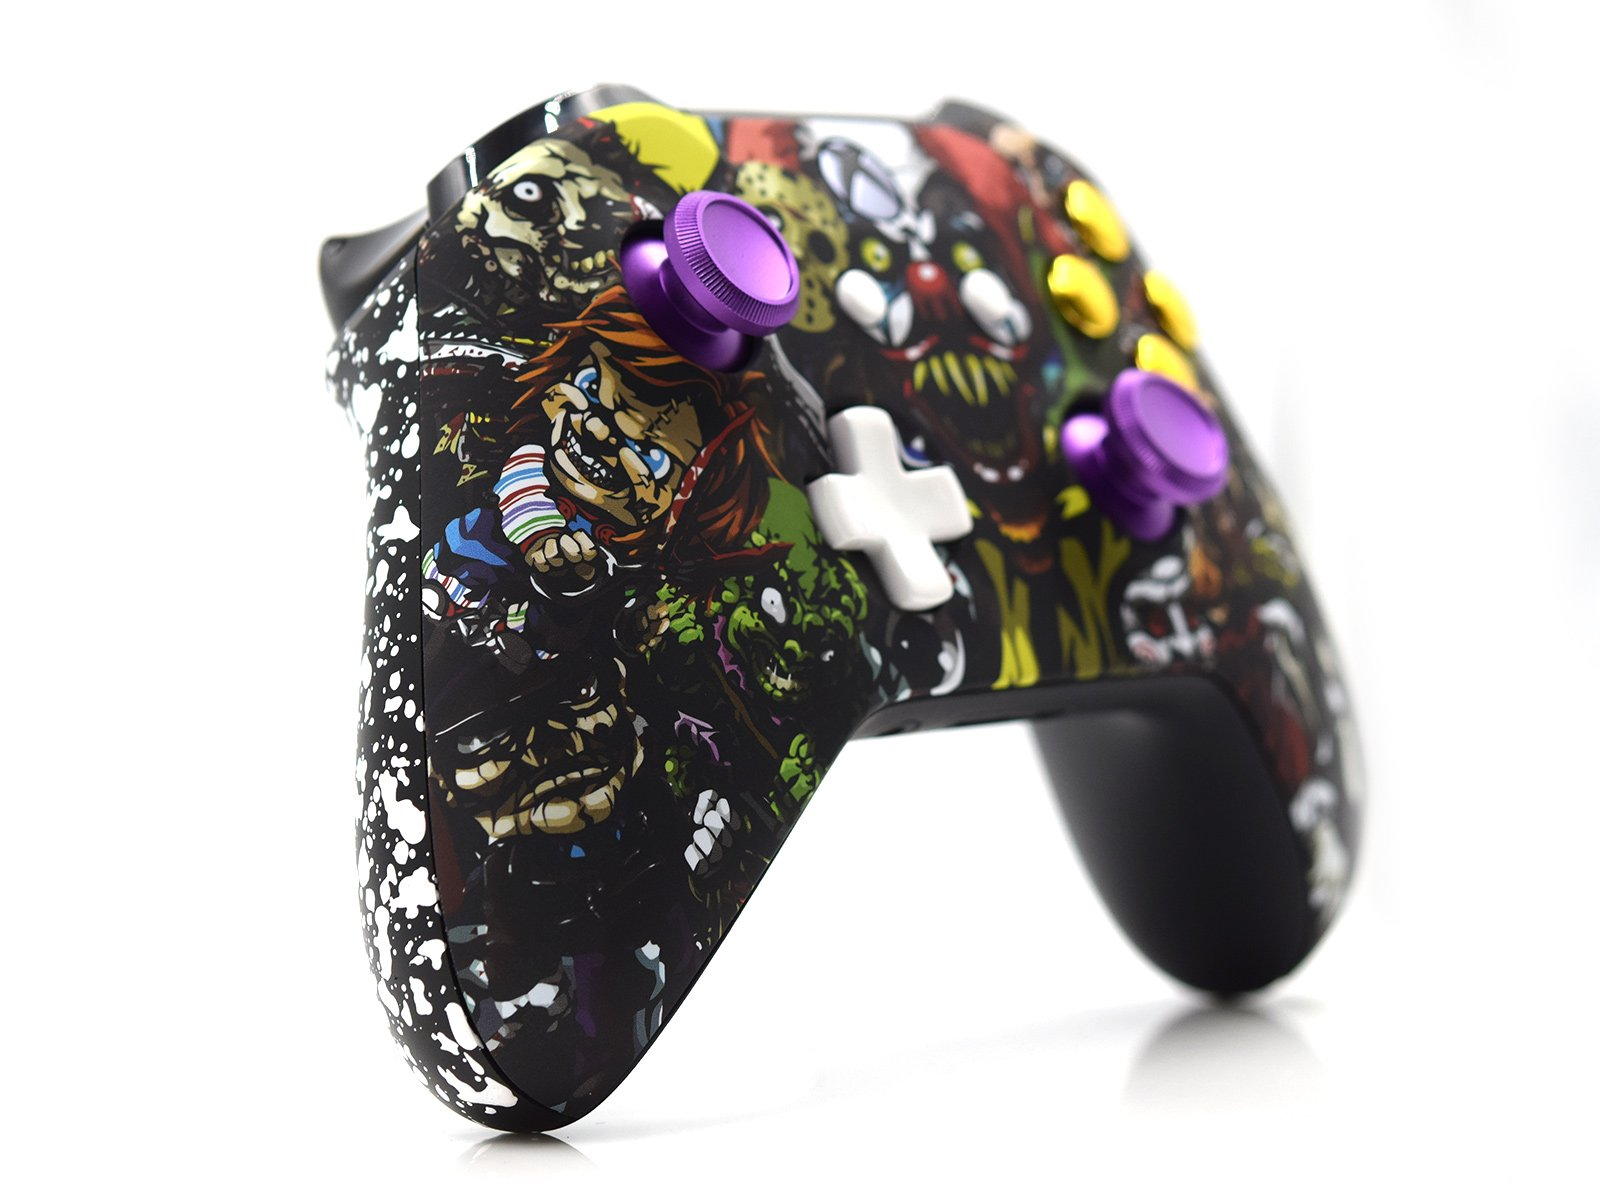 Custom Xbox One S Controller - Scarry Party